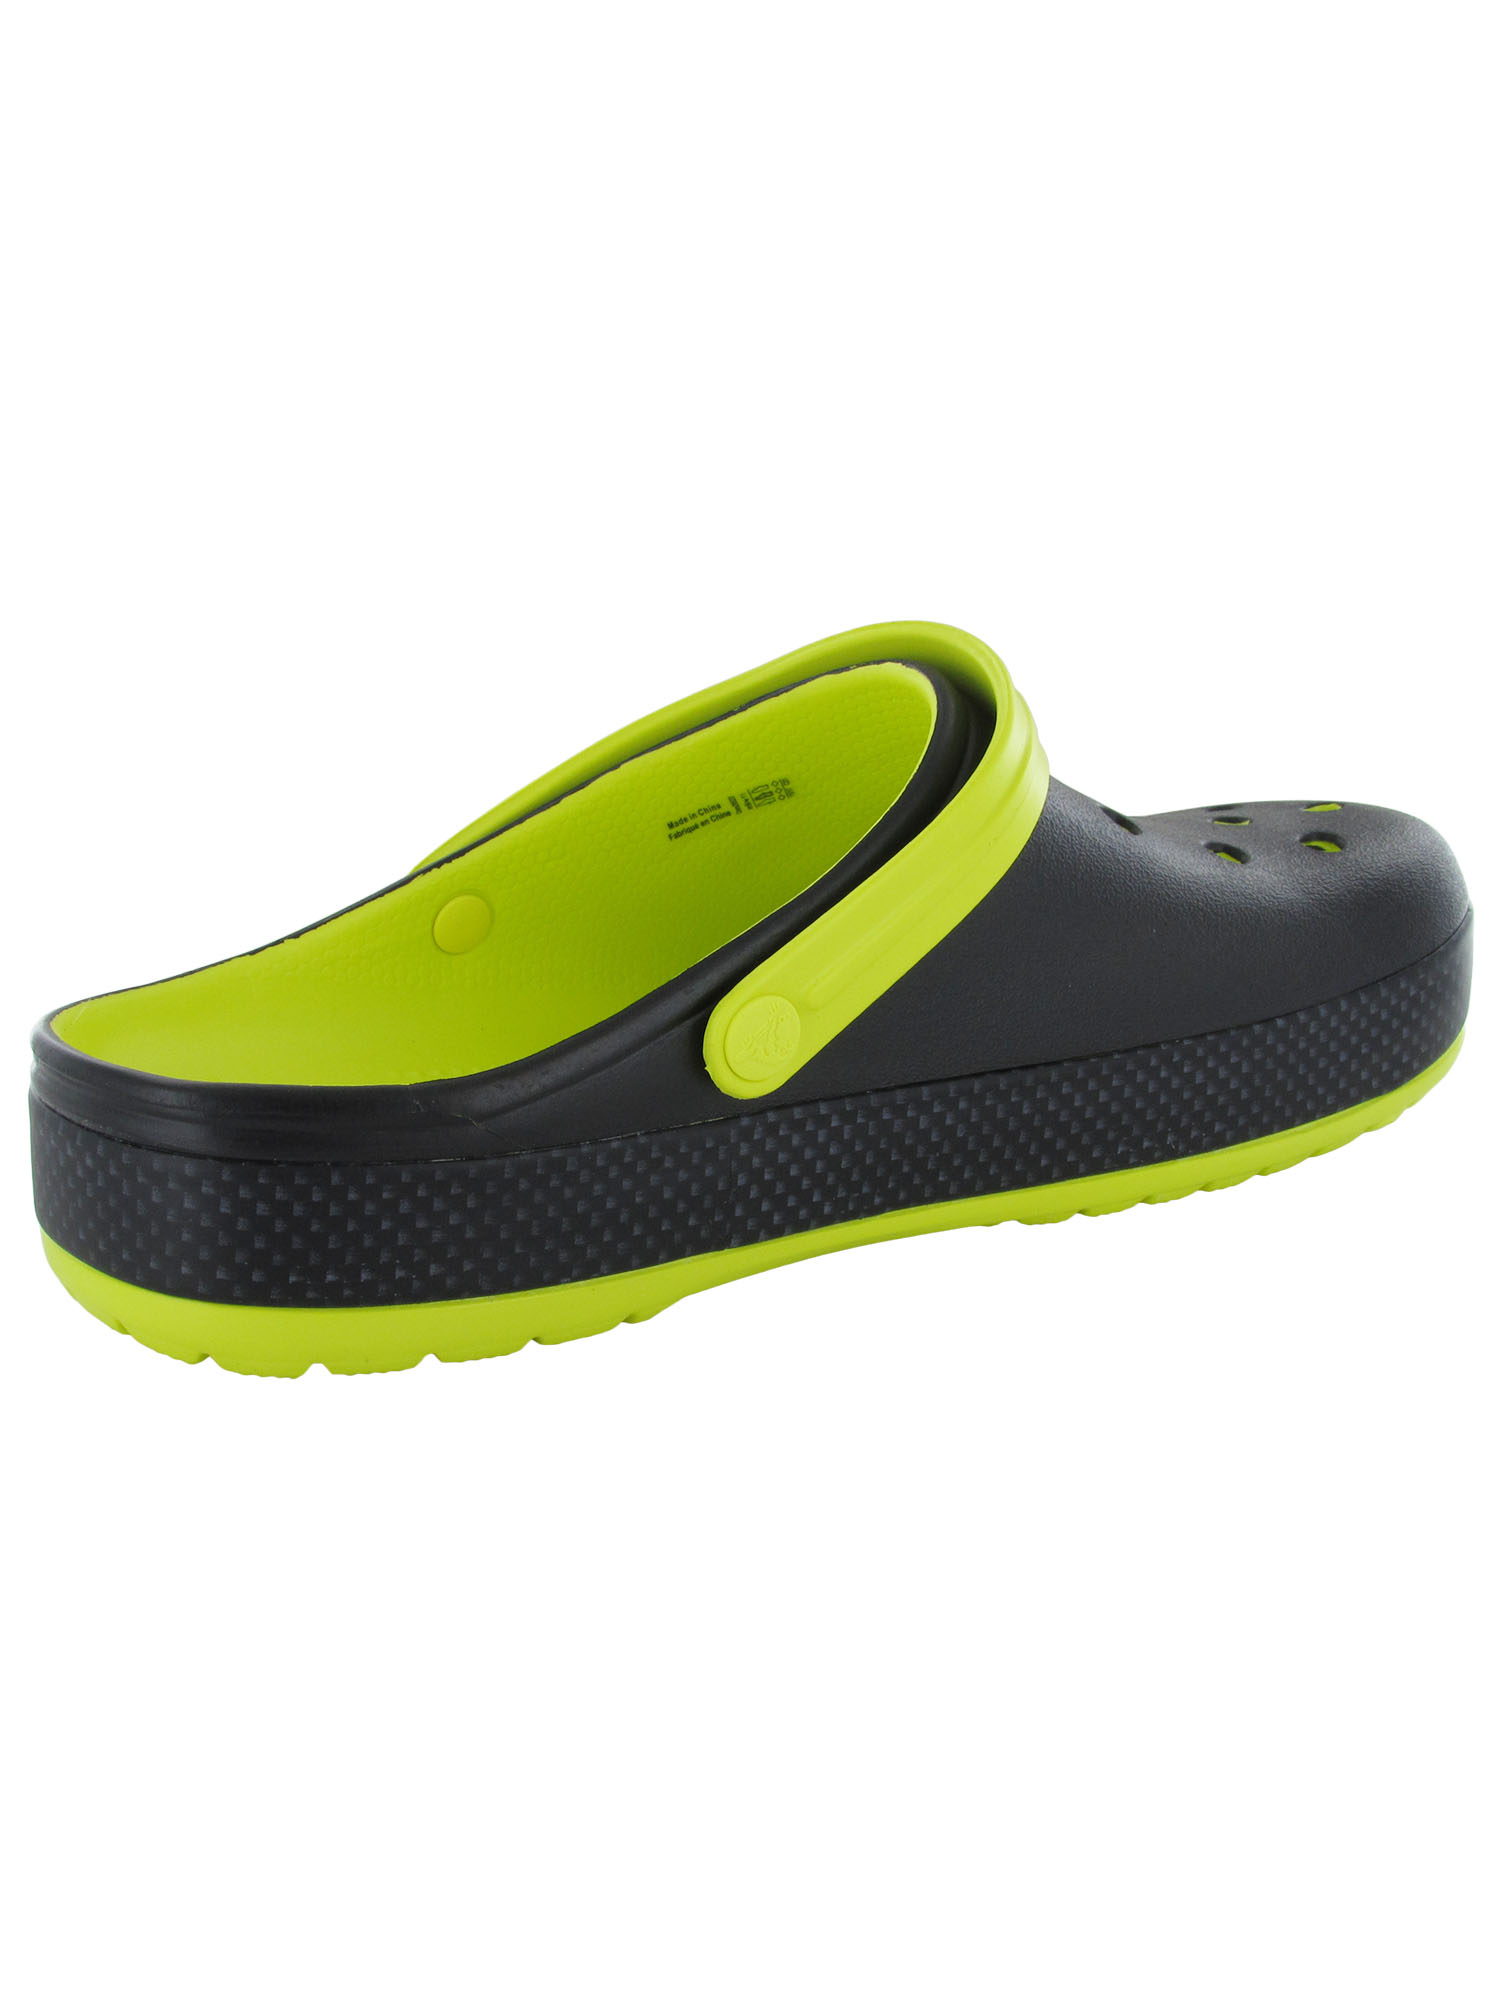 Crocs-Crocband-Carbon-Graphic-Clog thumbnail 7